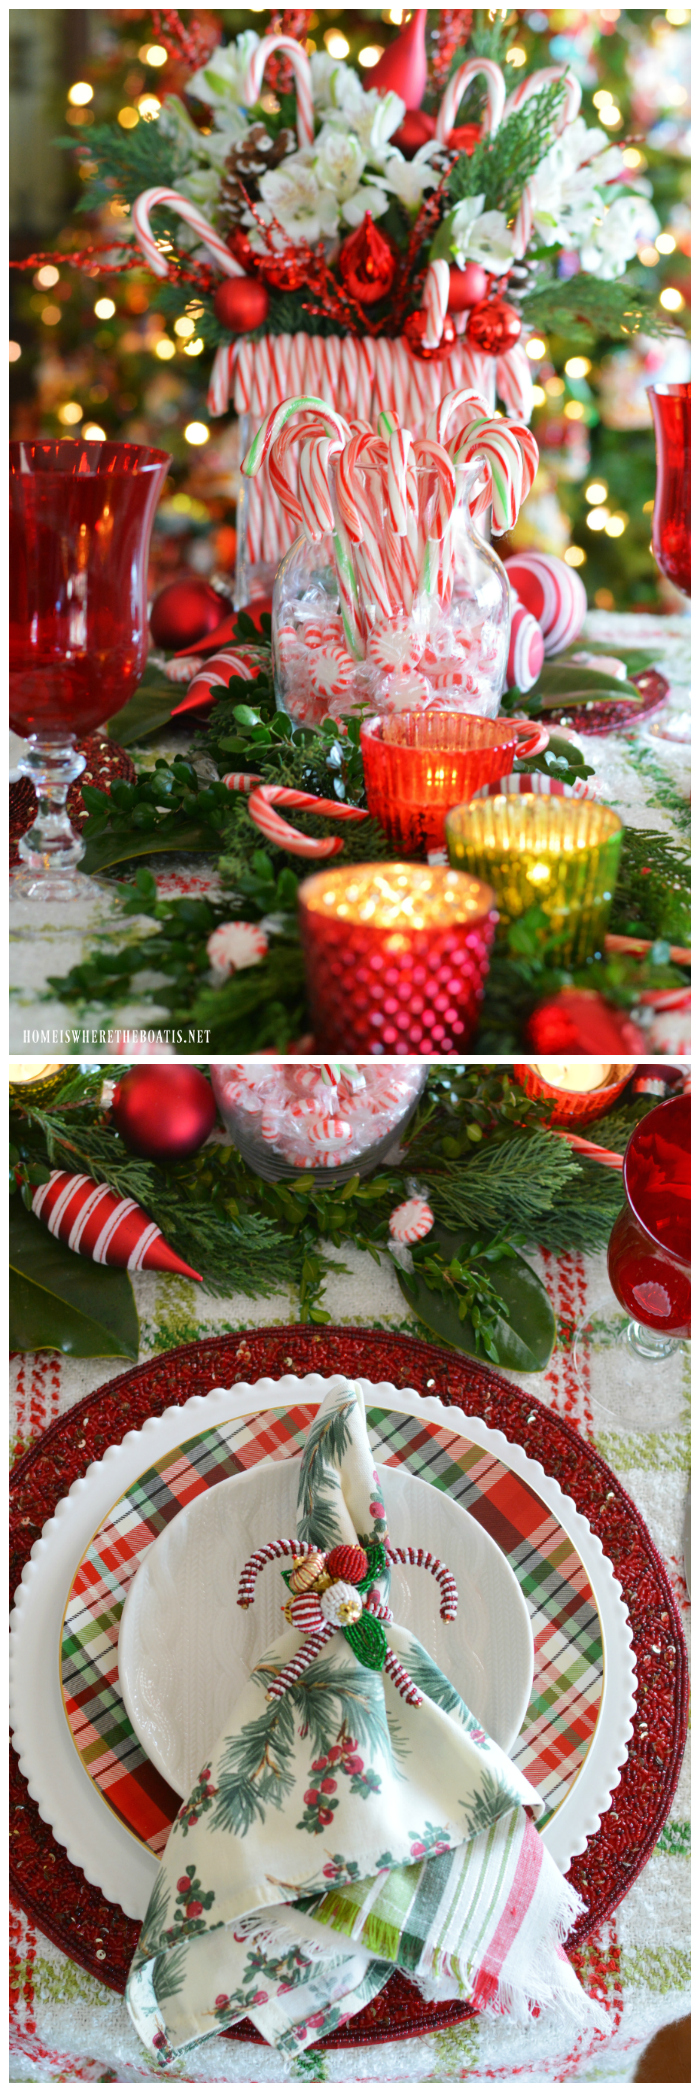 Merry and Bright Candy Cane Christmas Tablescape | ©homeiswheretheboatis.net #Christmas #tablescapes #redandgreen #candycanes